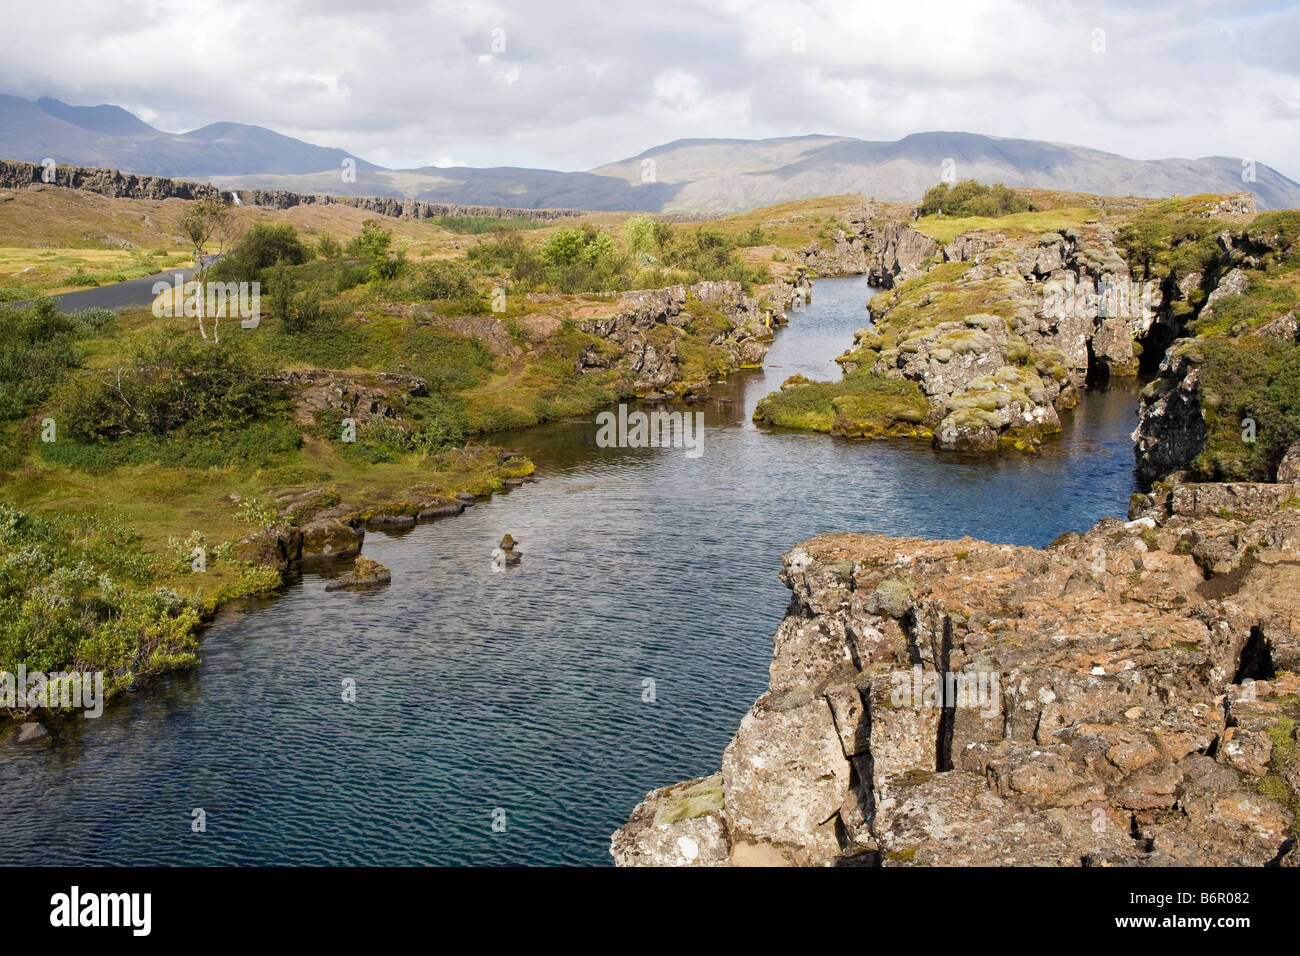 Landscape at Þingvellir, the site of the first Icelandic parliament, called Althing, first established in 930 AD Stock Photo